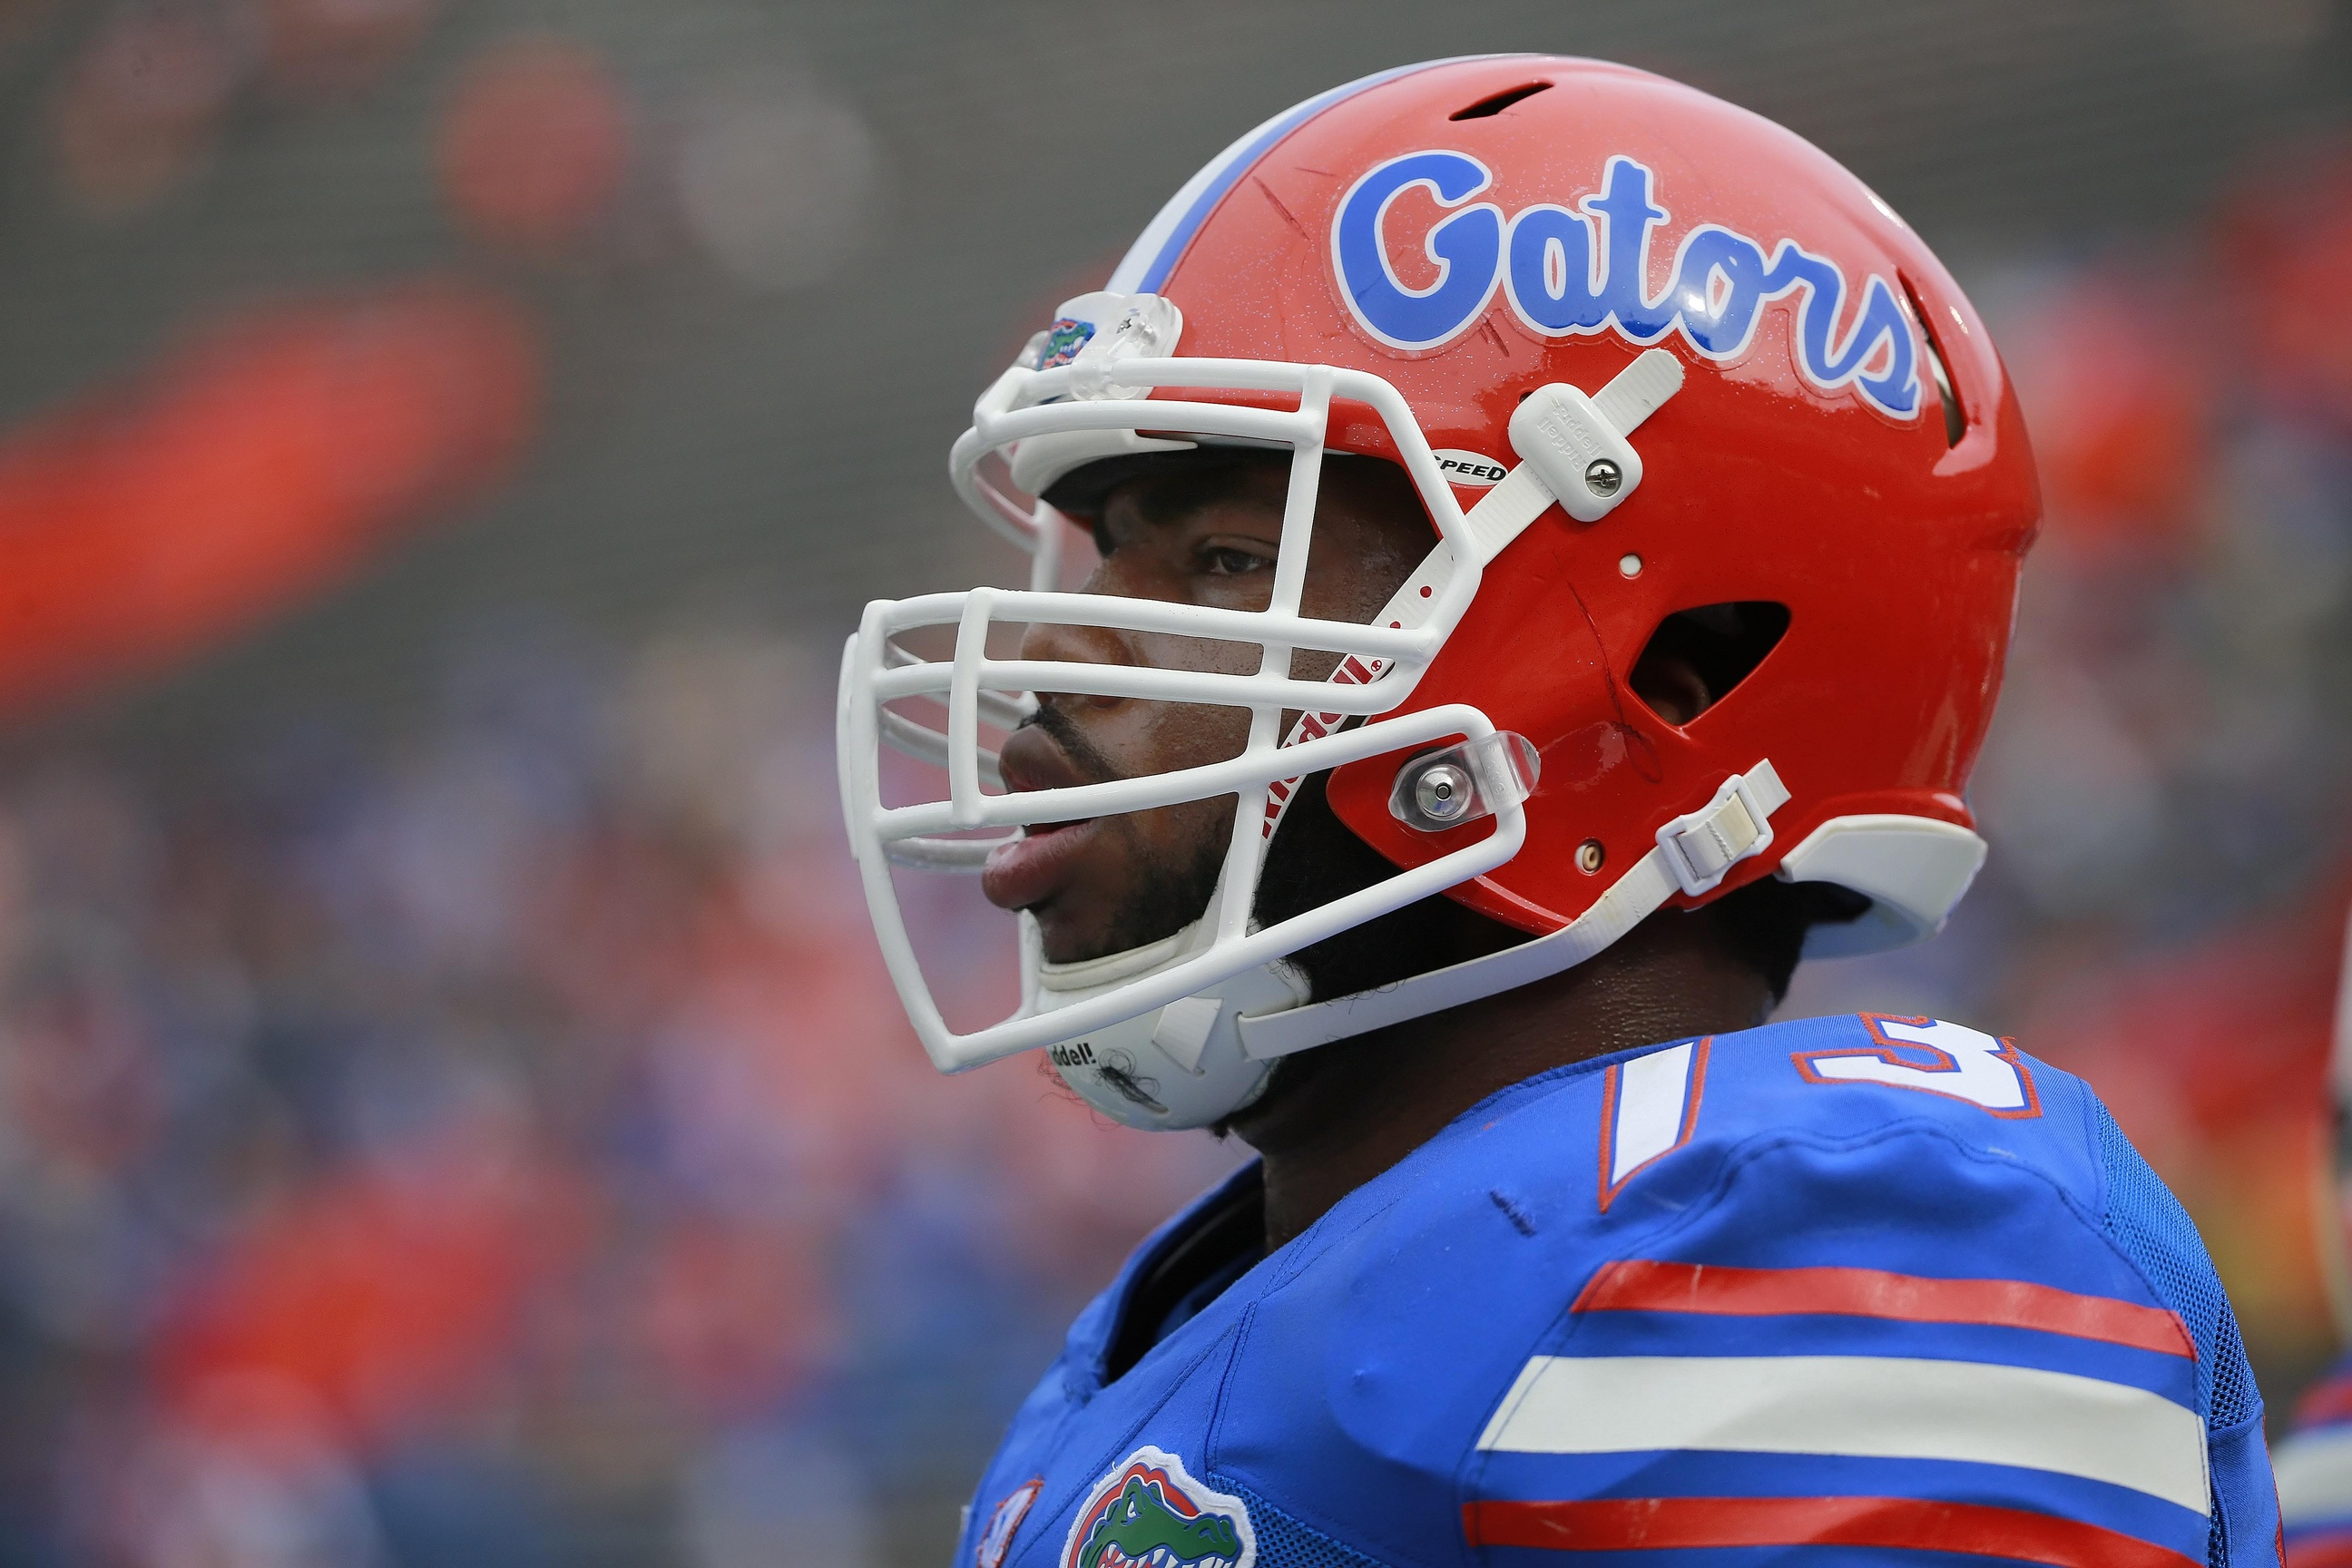 Nov 21, 2015; Gainesville, FL, USA; Florida Gators offensive lineman Martez Ivey (73) works out prior to the game against the Florida Atlantic Owls at Ben Hill Griffin Stadium. Mandatory Credit: Kim Klement-USA TODAY Sports